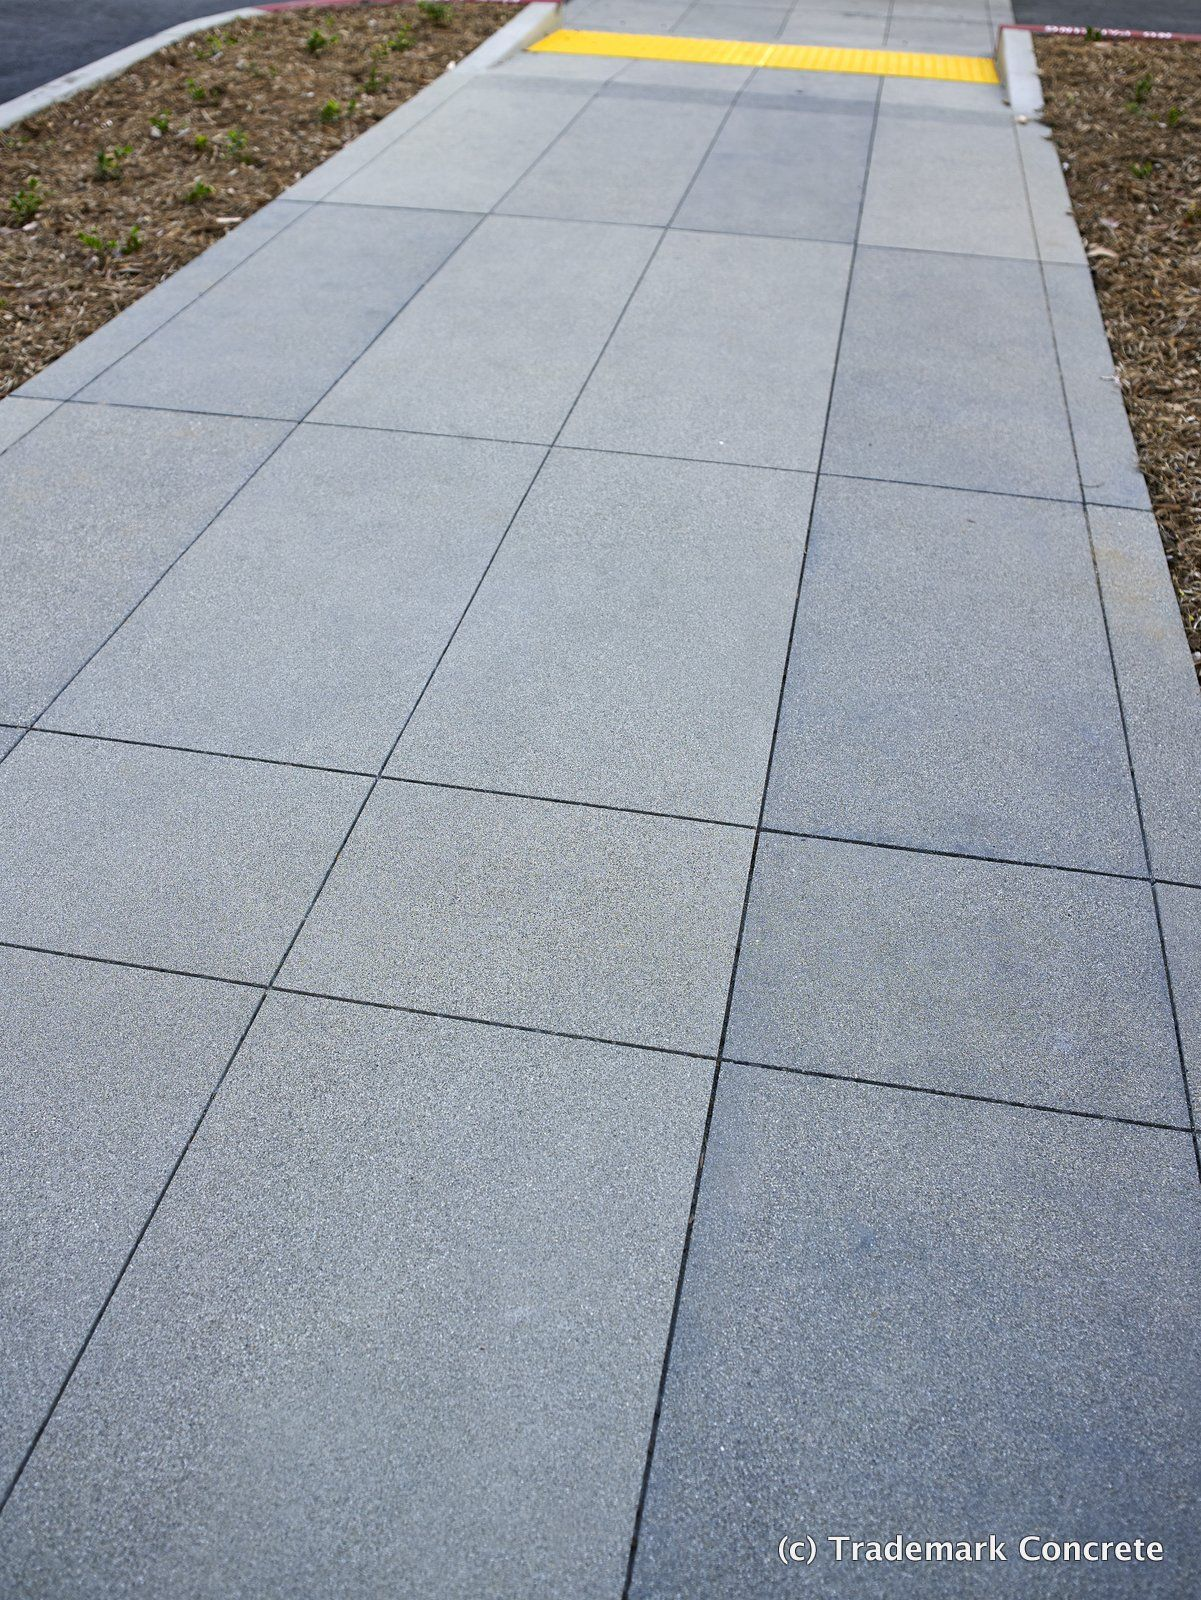 Decorative concrete installed by dcc member trademark concrete sawcut grid pattern various integral colors all with a sand finish at the hca hospital in